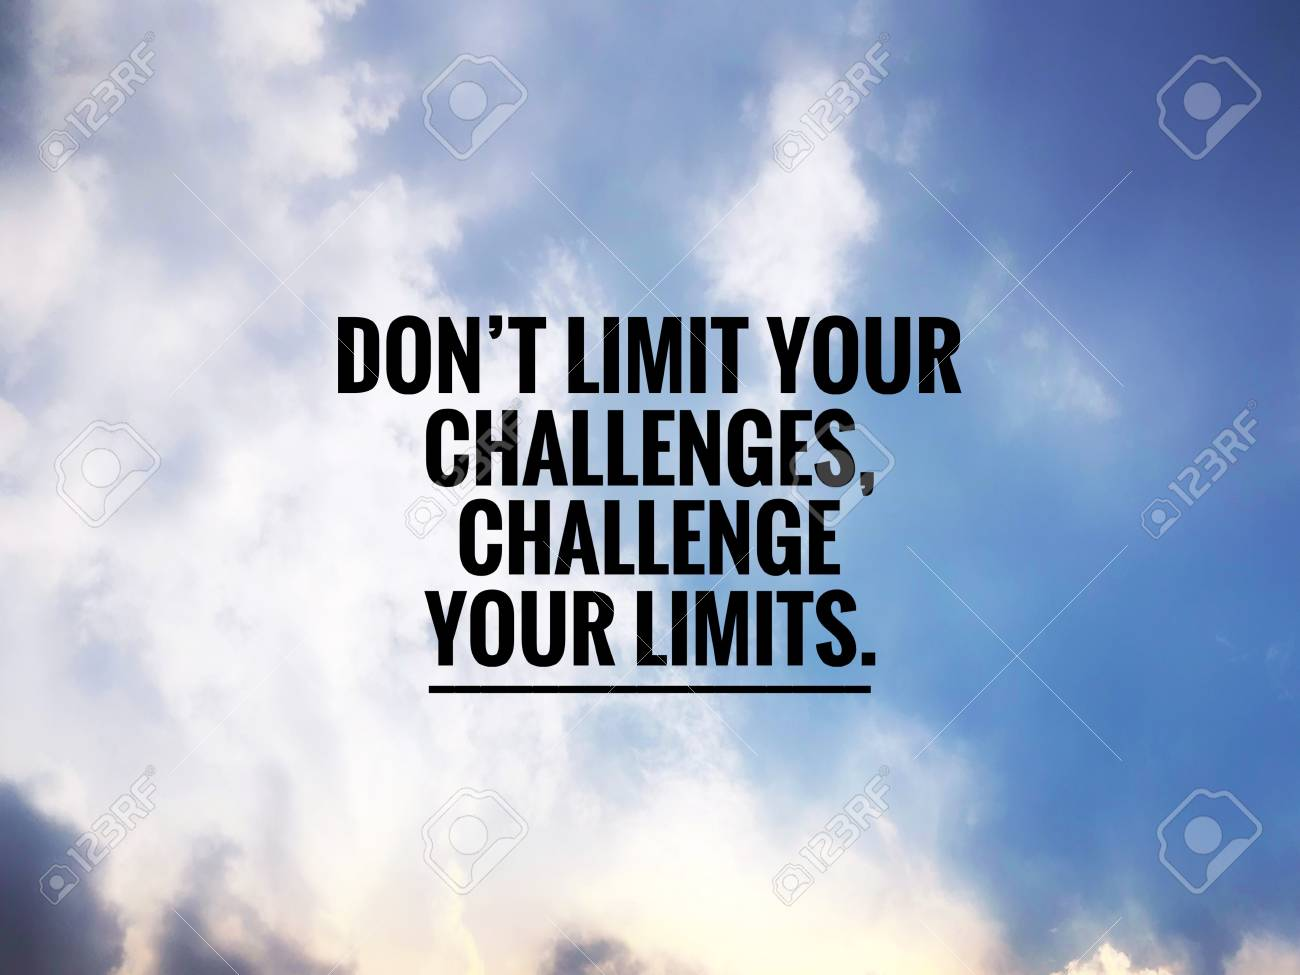 Motivational And Inspirational Quotes Dont Limit Your Challenges